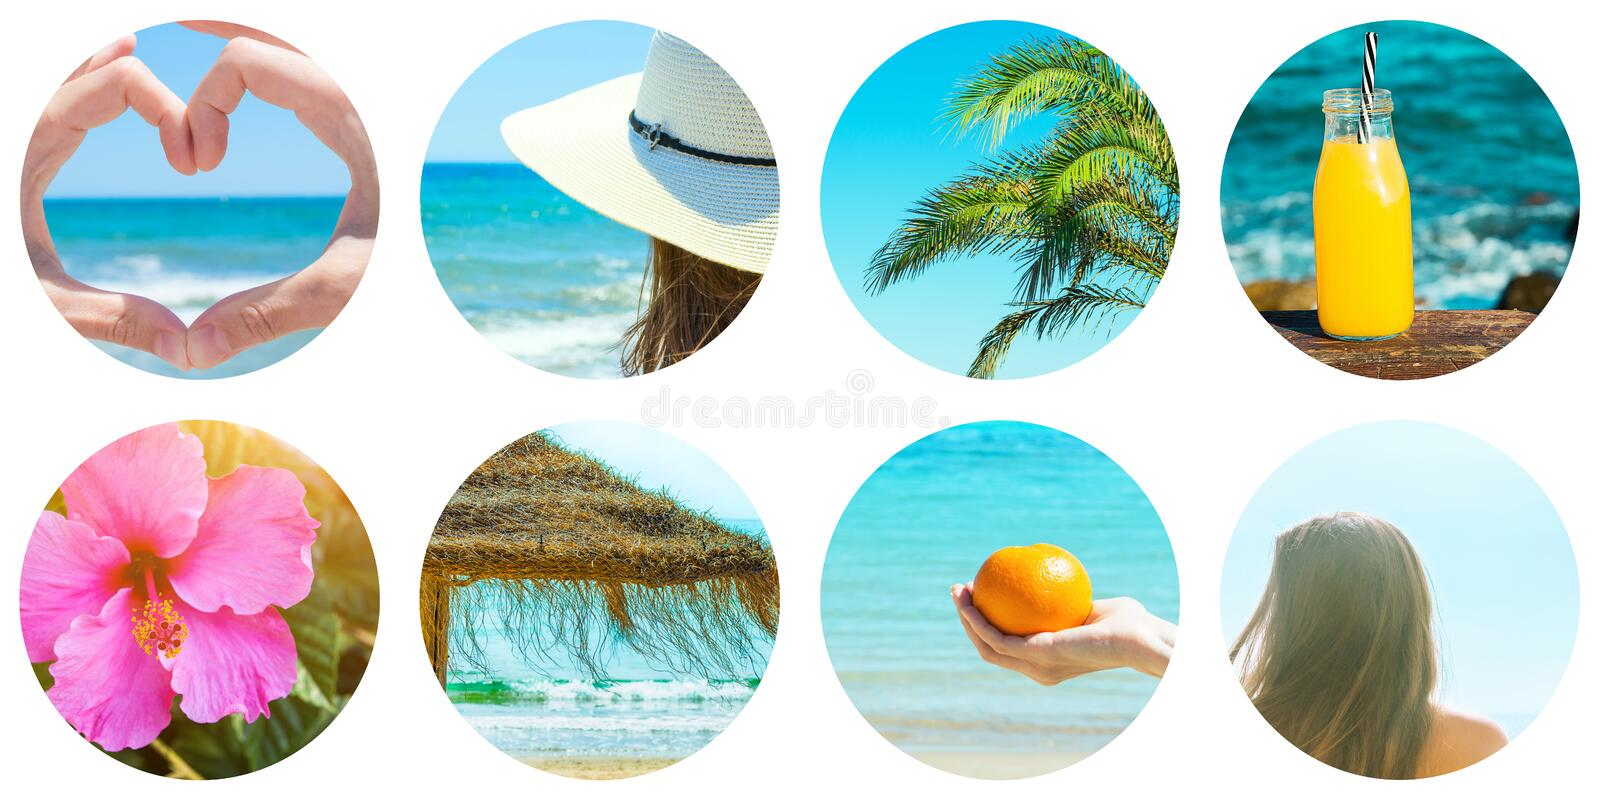 Collage set of round circle icons isolated on white background. Seaside ocean vacation on beach. Young caucasian woman palm trees royalty free stock photo